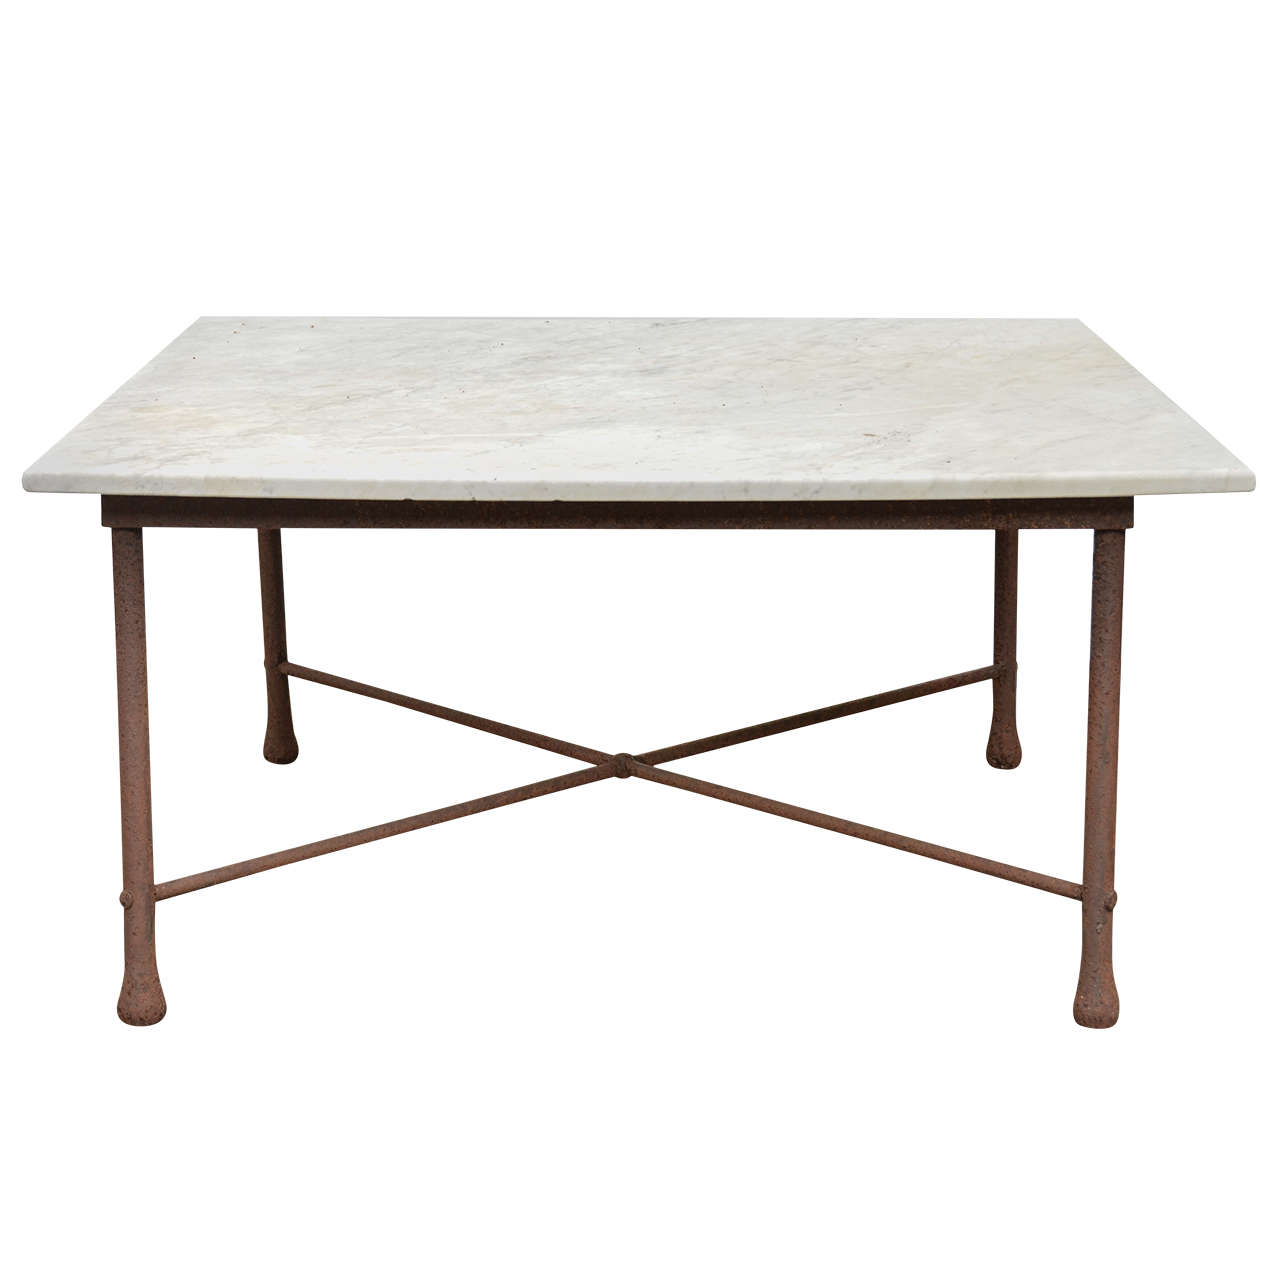 American 1970s Wrought Iron Coffee Table With Marble Top At 1stdibs